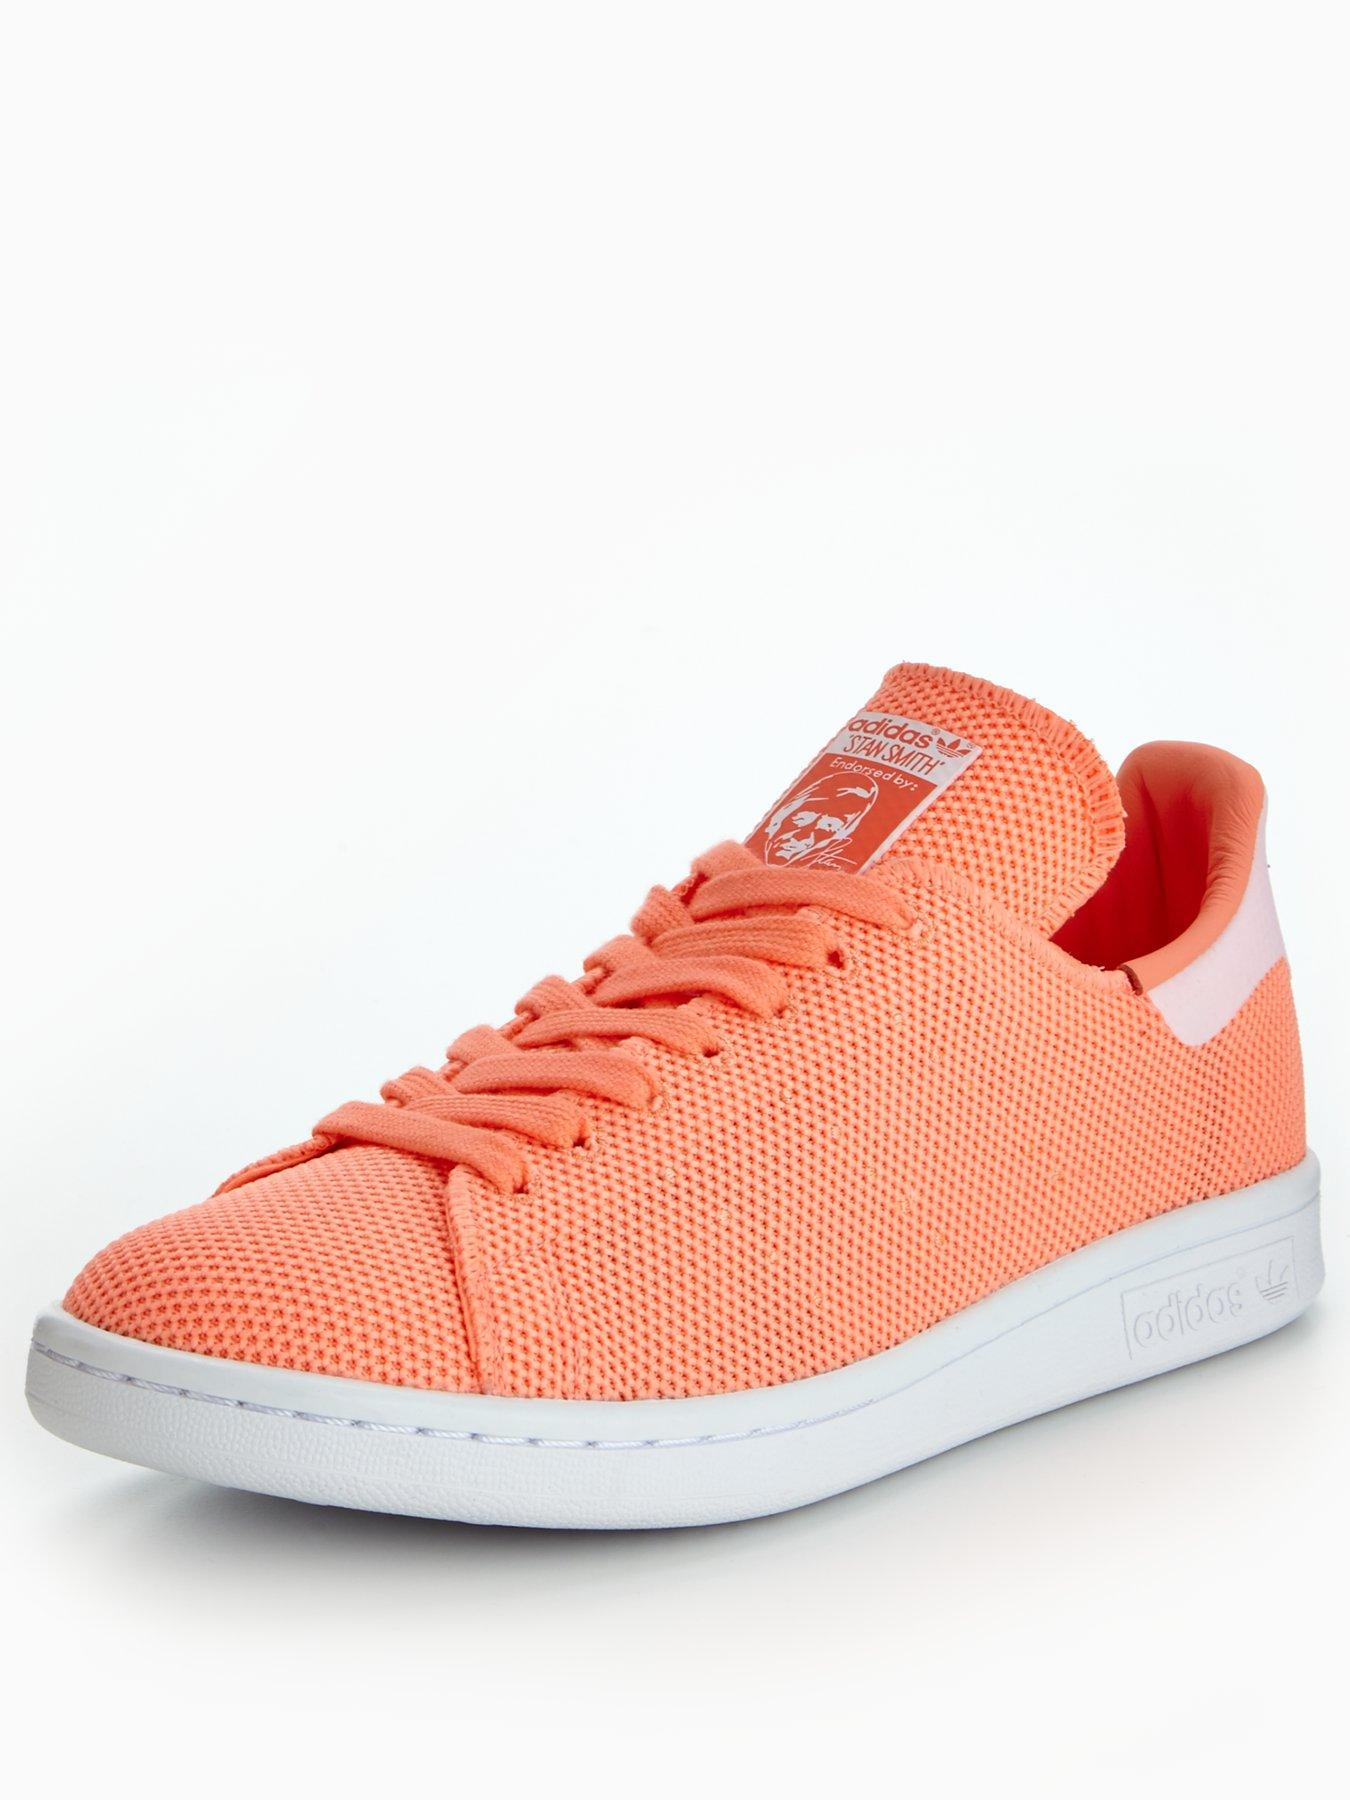 adidas Originals Stan Smith Orange 1600109501 Women's Shoes adidas Originals Trainers